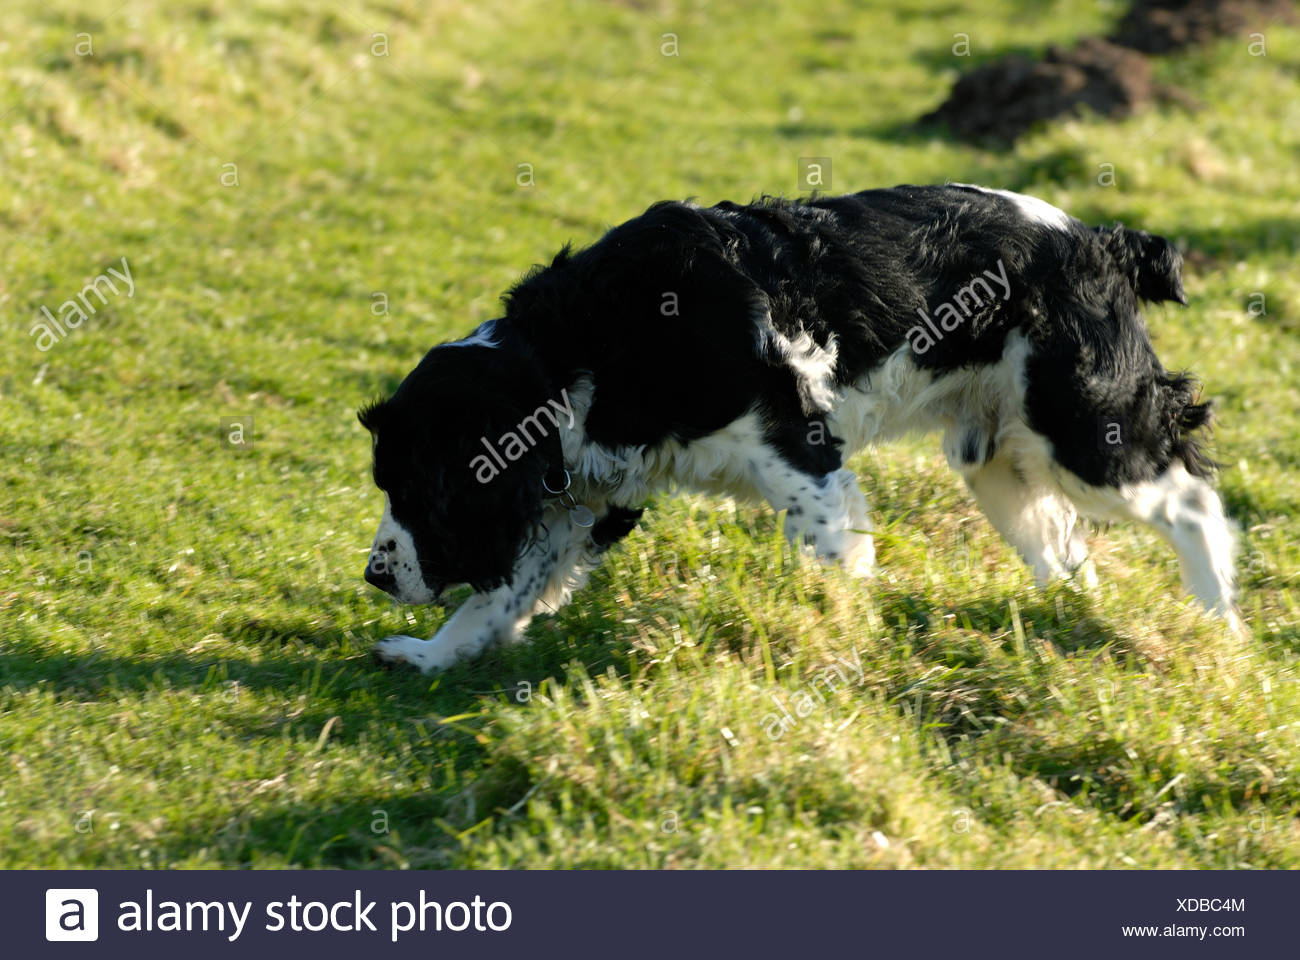 Black English springer spaniel dog following scent to spring game - Stock Image